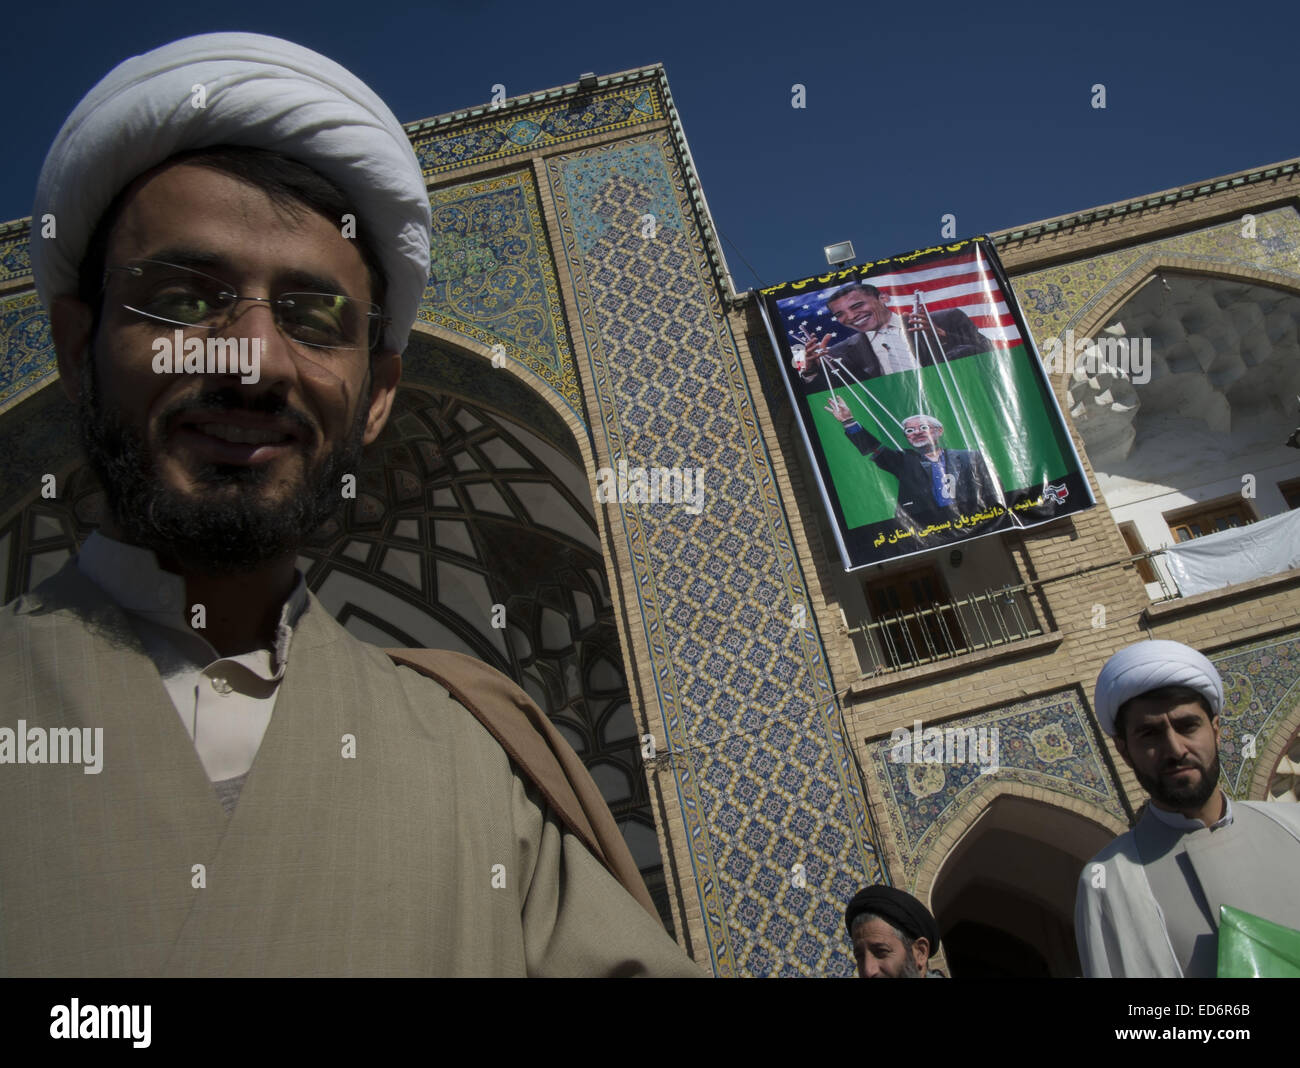 Qom, Iran. 29th Dec, 2014. December 30, 2014 - Qom, Iran - Two Iranian clerics look on as a banner with images of - Stock Image